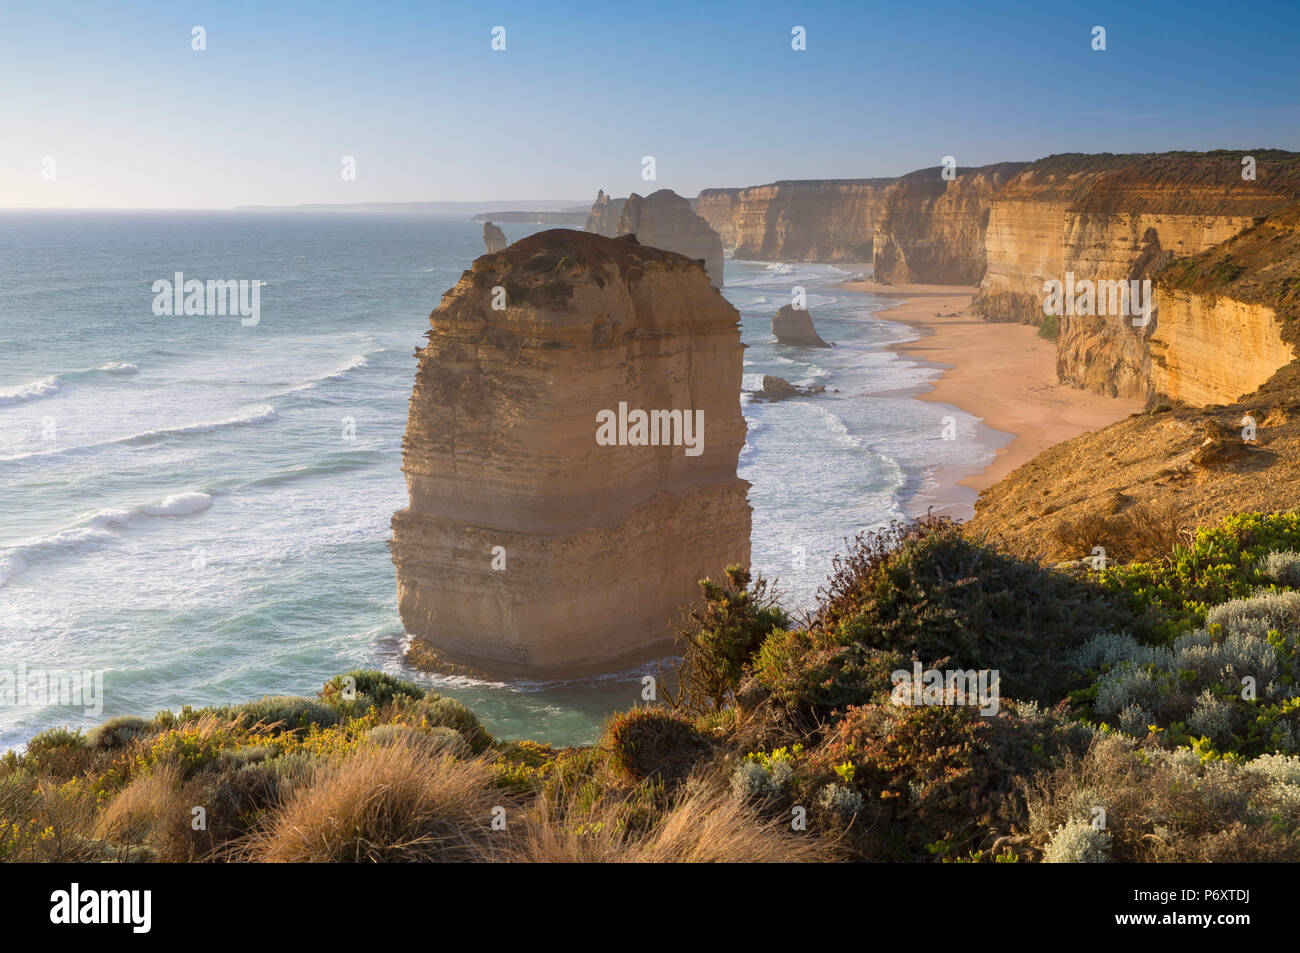 Zwölf Apostel, Port Campbell National Park, Great Ocean Road, Victoria, Australien Stockfoto